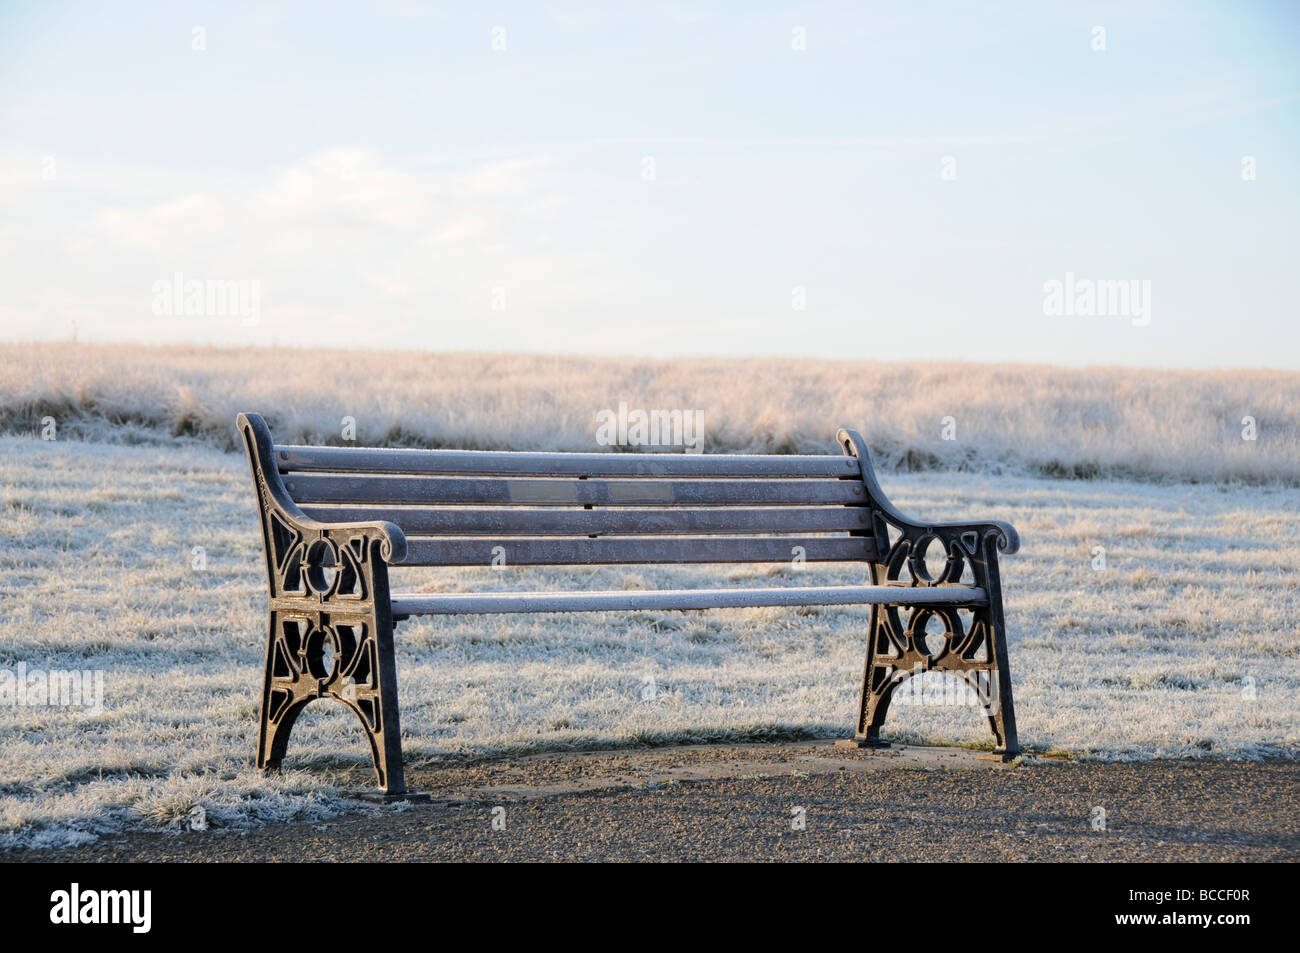 frost covered bench scene, England - Stock Image